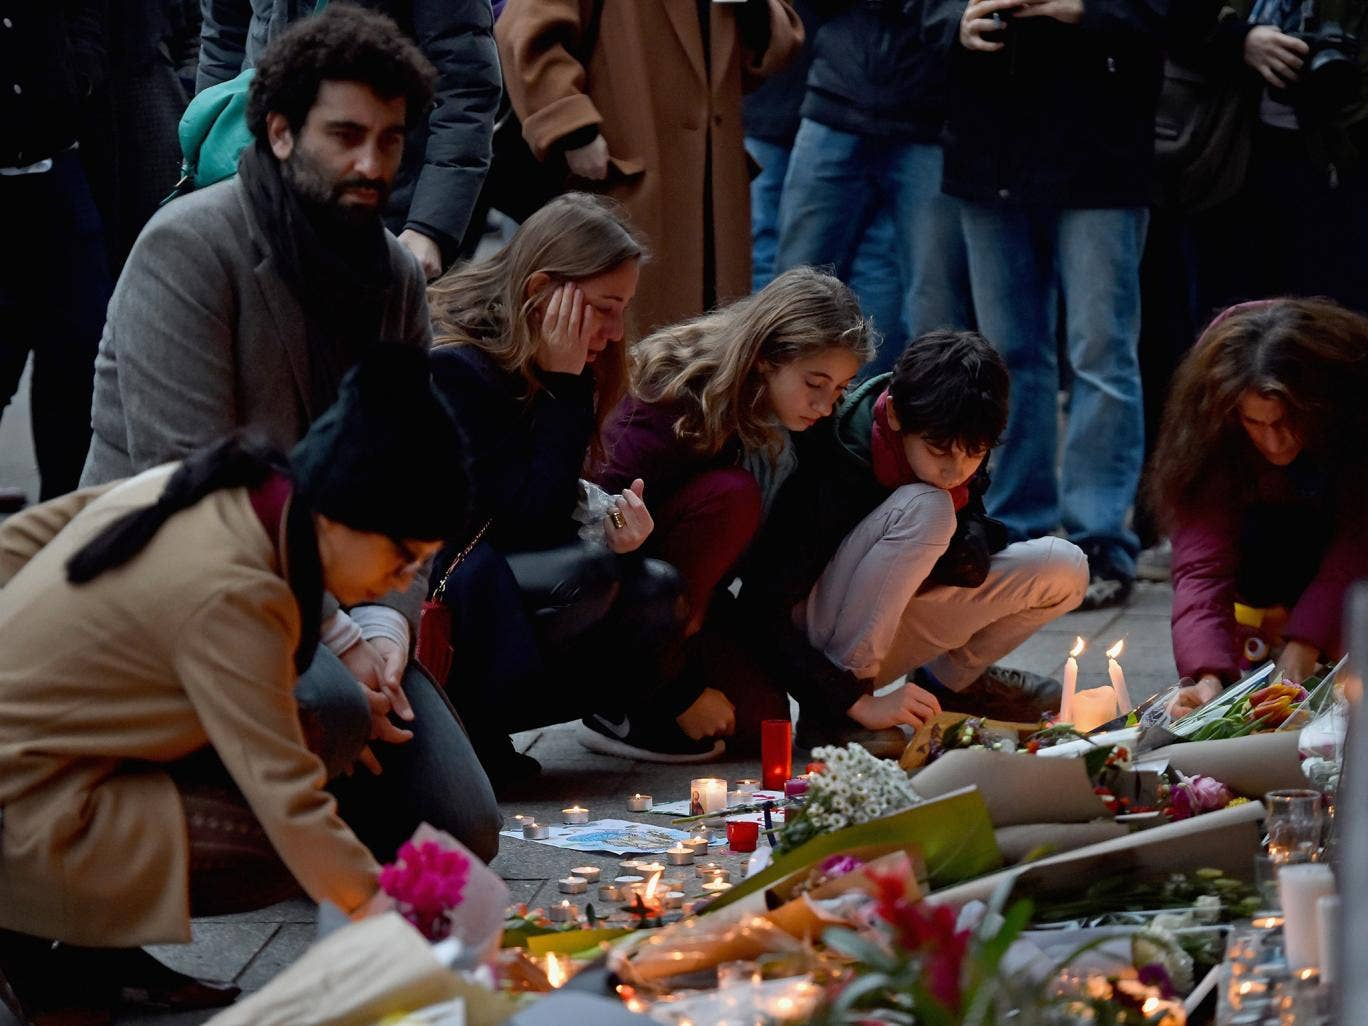 Mourners gather in front of Petit Cambodge and Le Carillon restaurants after Paris attacks